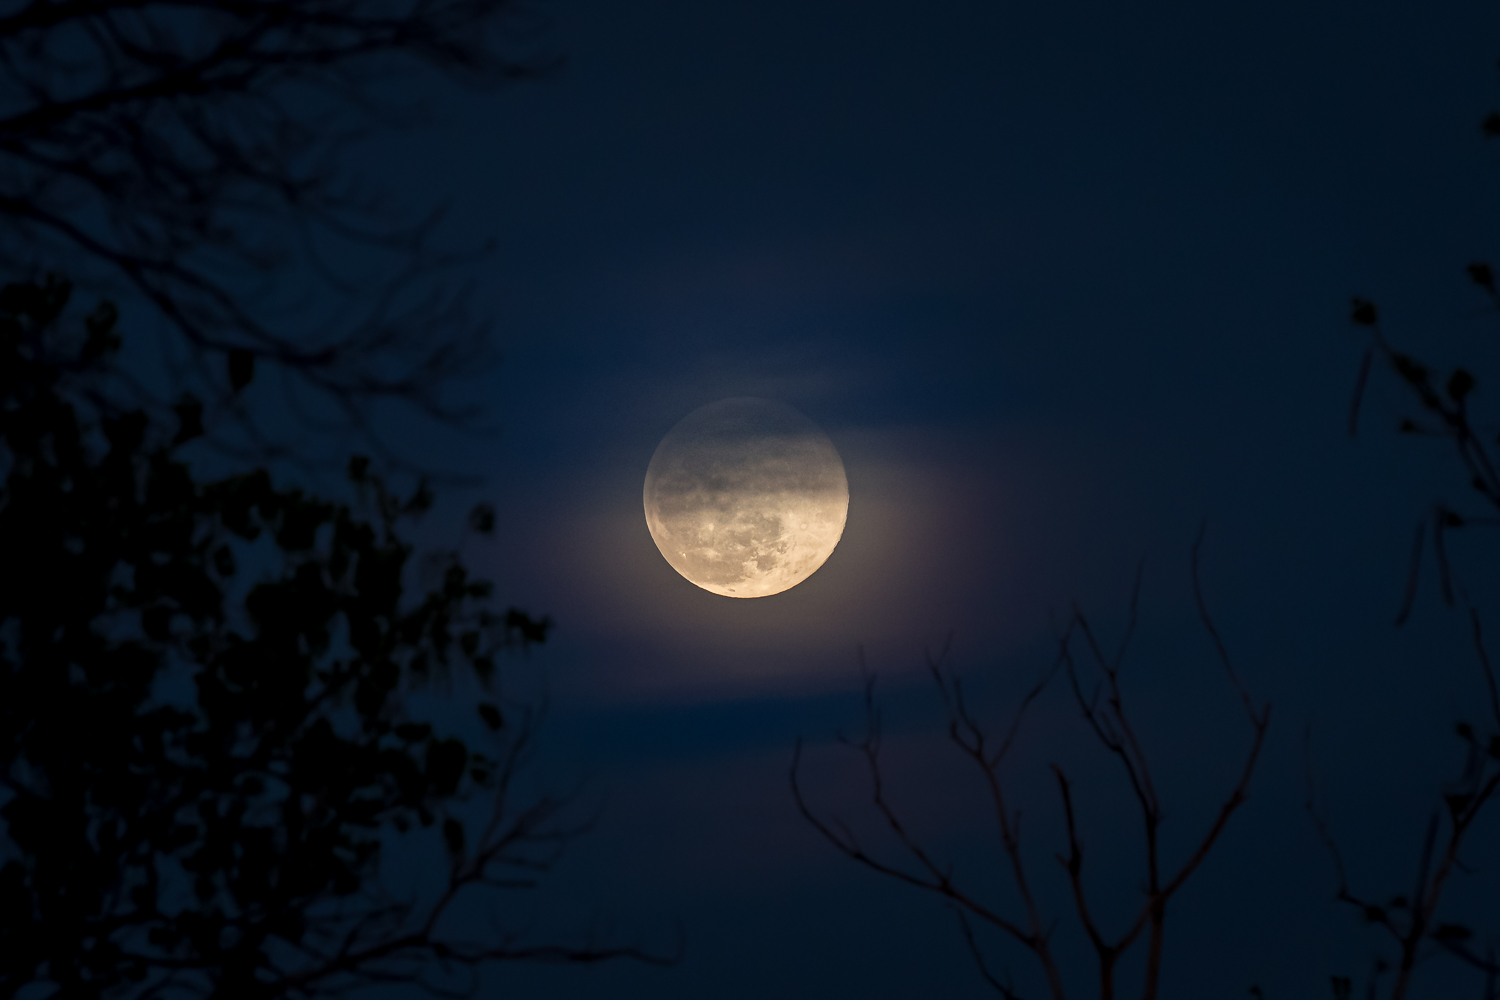 Moon Photography Settings Clouds and Foreground Trees